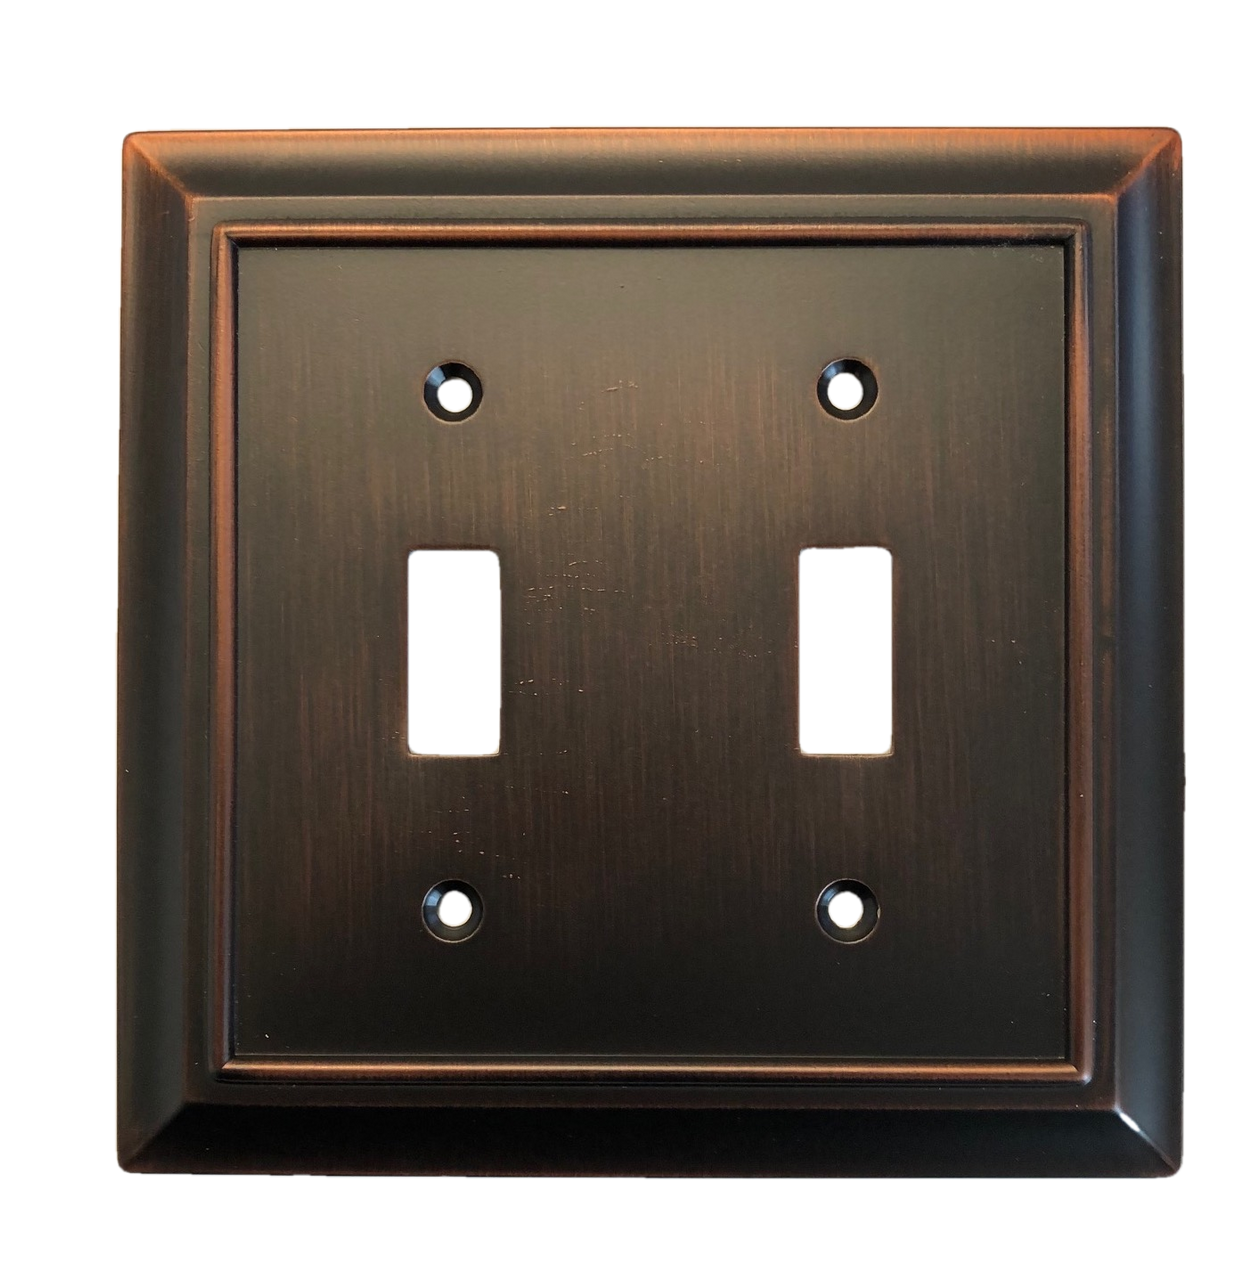 Brainerd W10085-BZM Architect Matte Bronze Double Switch Wall Plate Cover